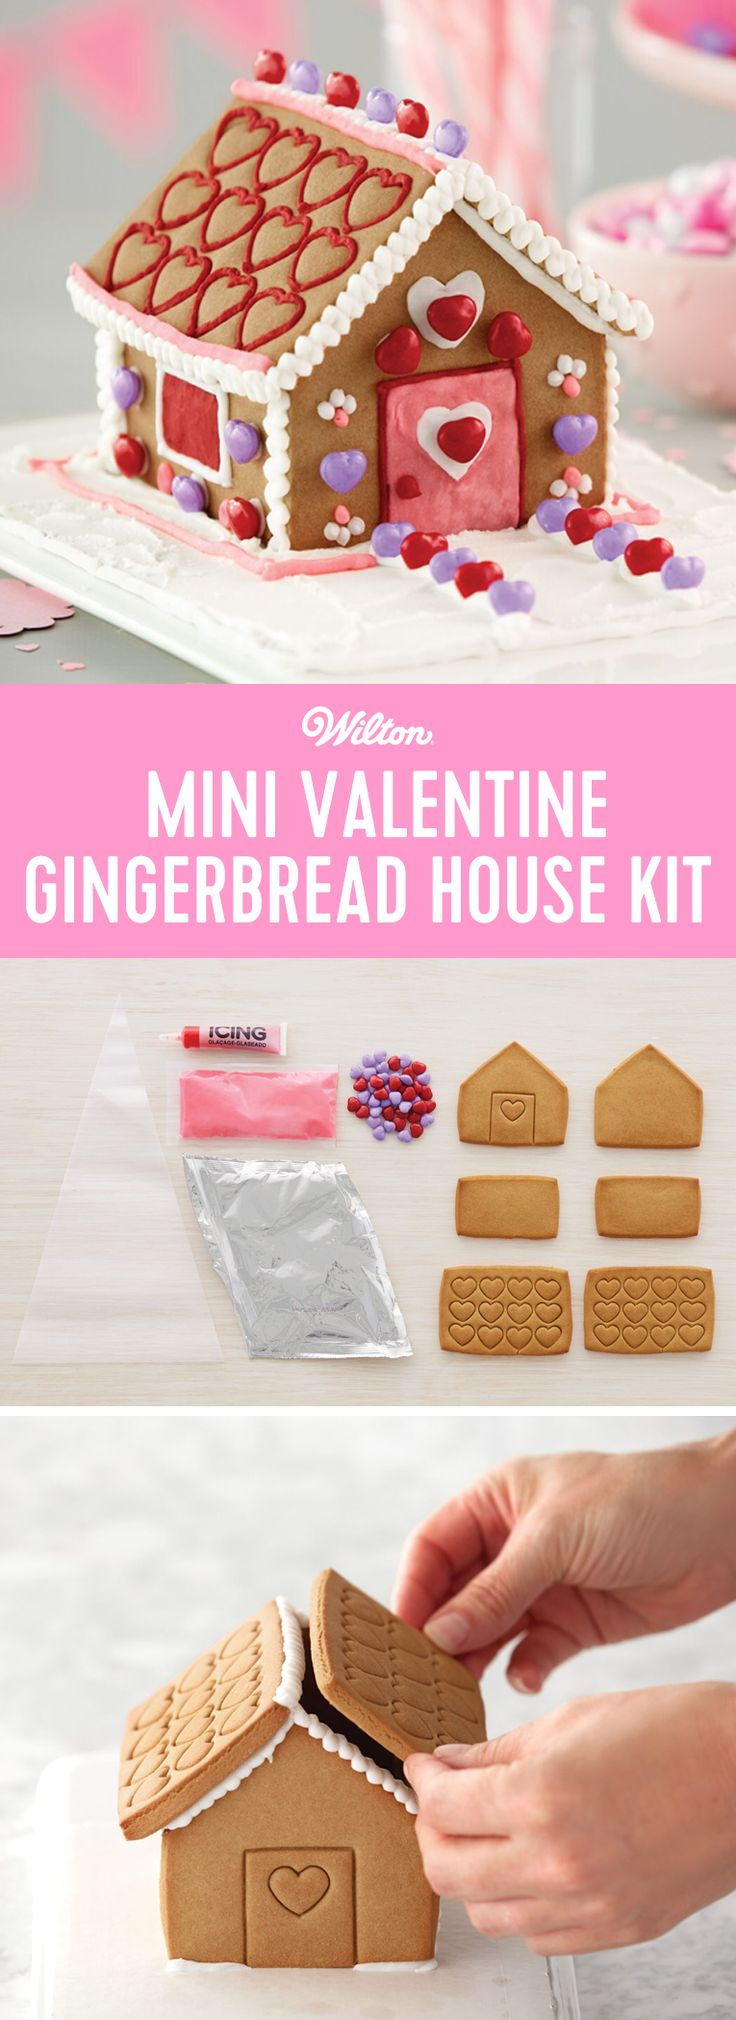 Plan a Valentine's Day Gingerbread House decorating party! Give a mini house to each guest and the fun begins. The completed houses make the sweetest Valentine's Day gifts that show how much everyone loves decorating with friends. #wiltoncakes #valentinesday #valentine #valentines #gingerbreadhouse #valentinegift #decorating #gingerbread #ideas #gingerbreadhouseideas